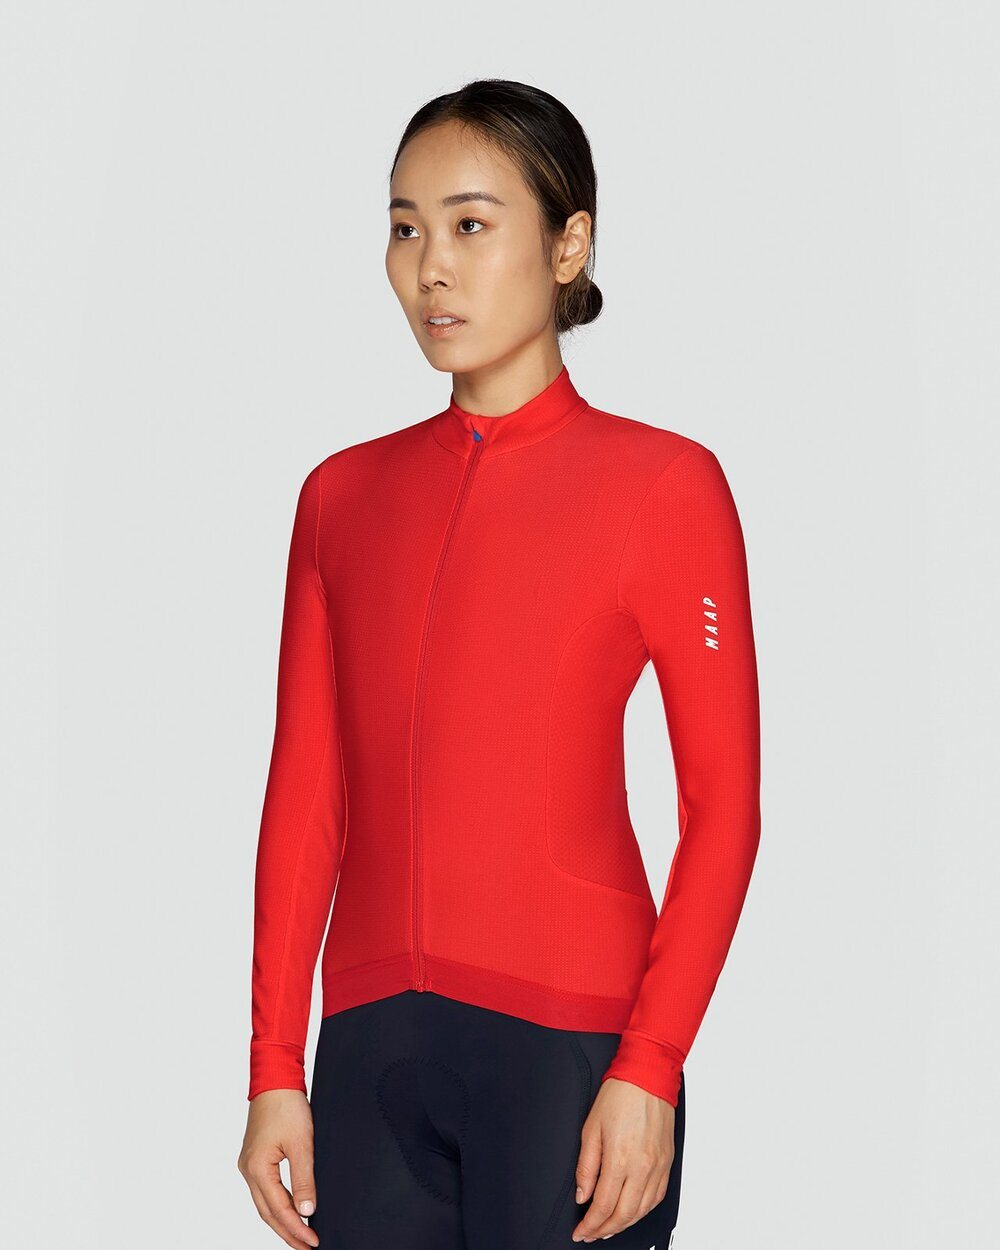 MAAP Women's Force Pro Long Sleeve Jersey - Chilli Cycling Jersey MAAP